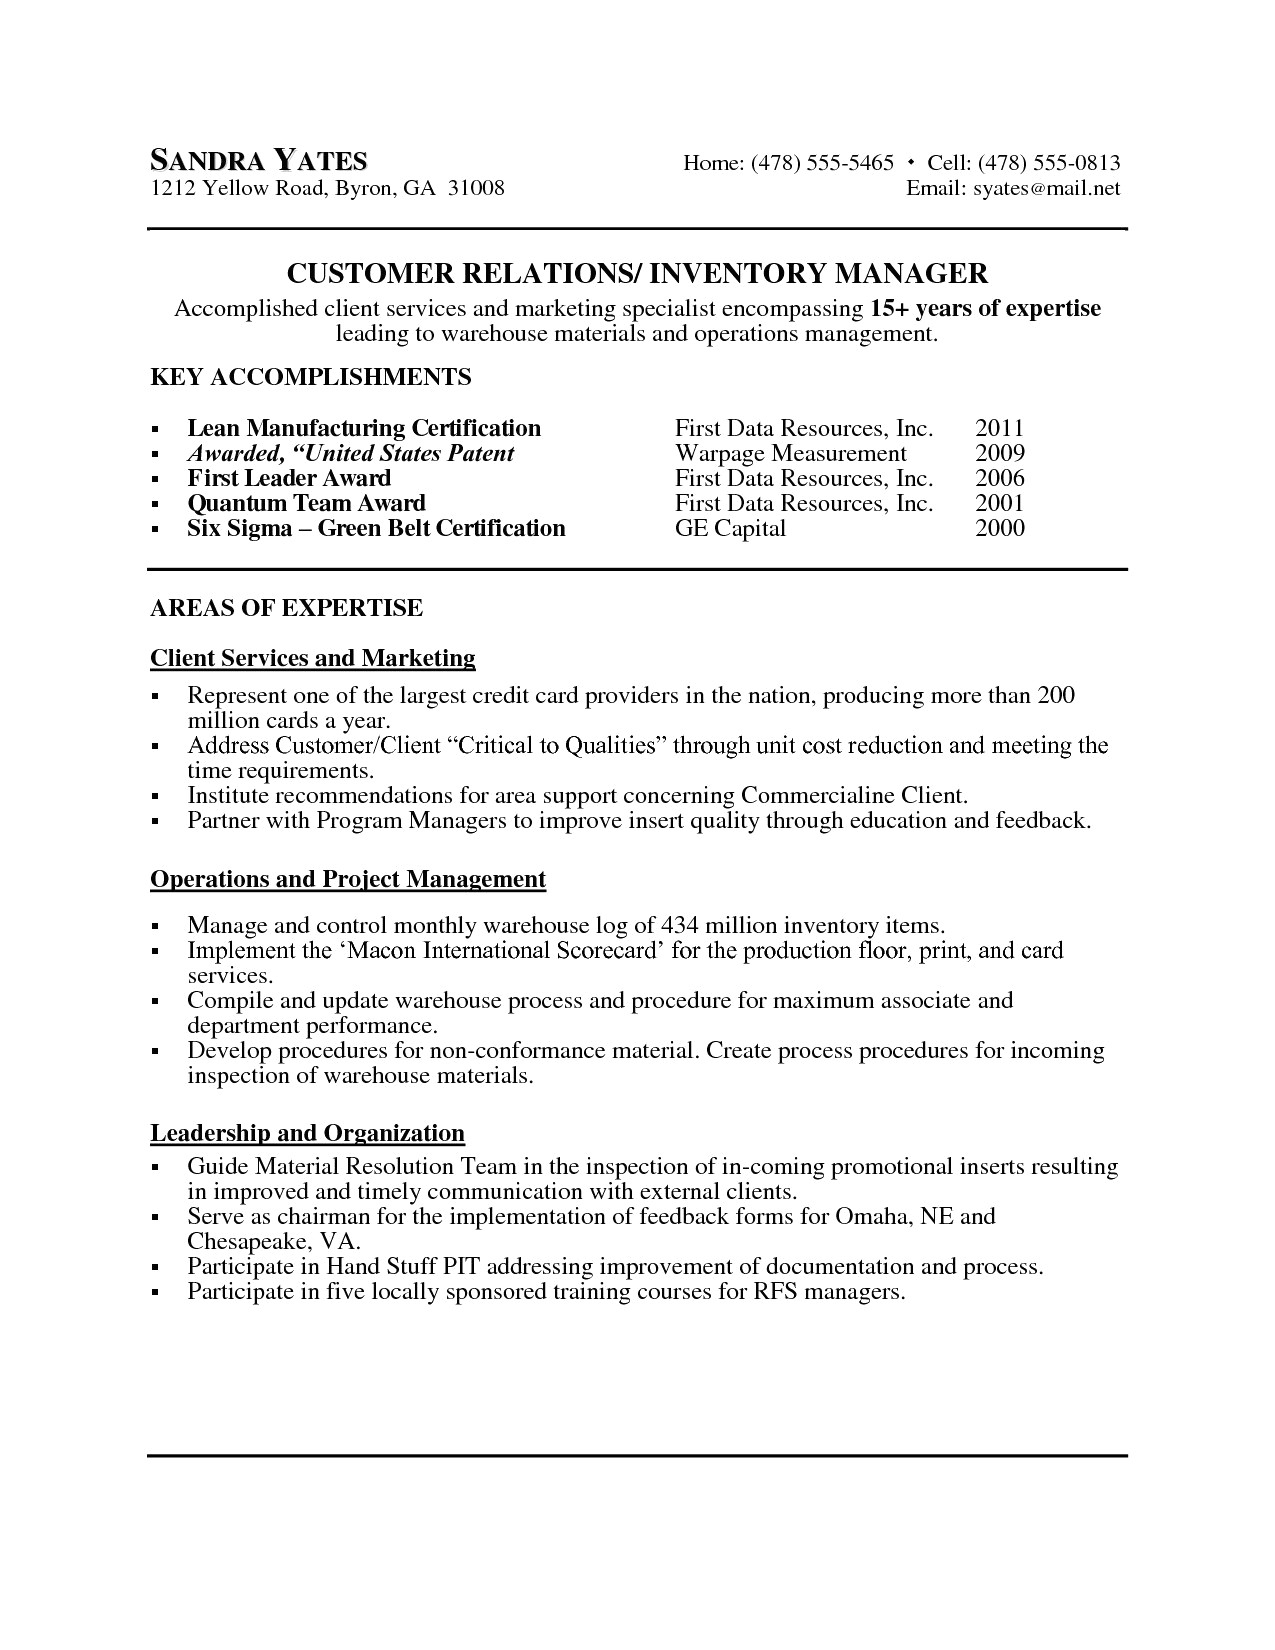 Certified Professional Resume Writer - 39 New Professional Resume Writer